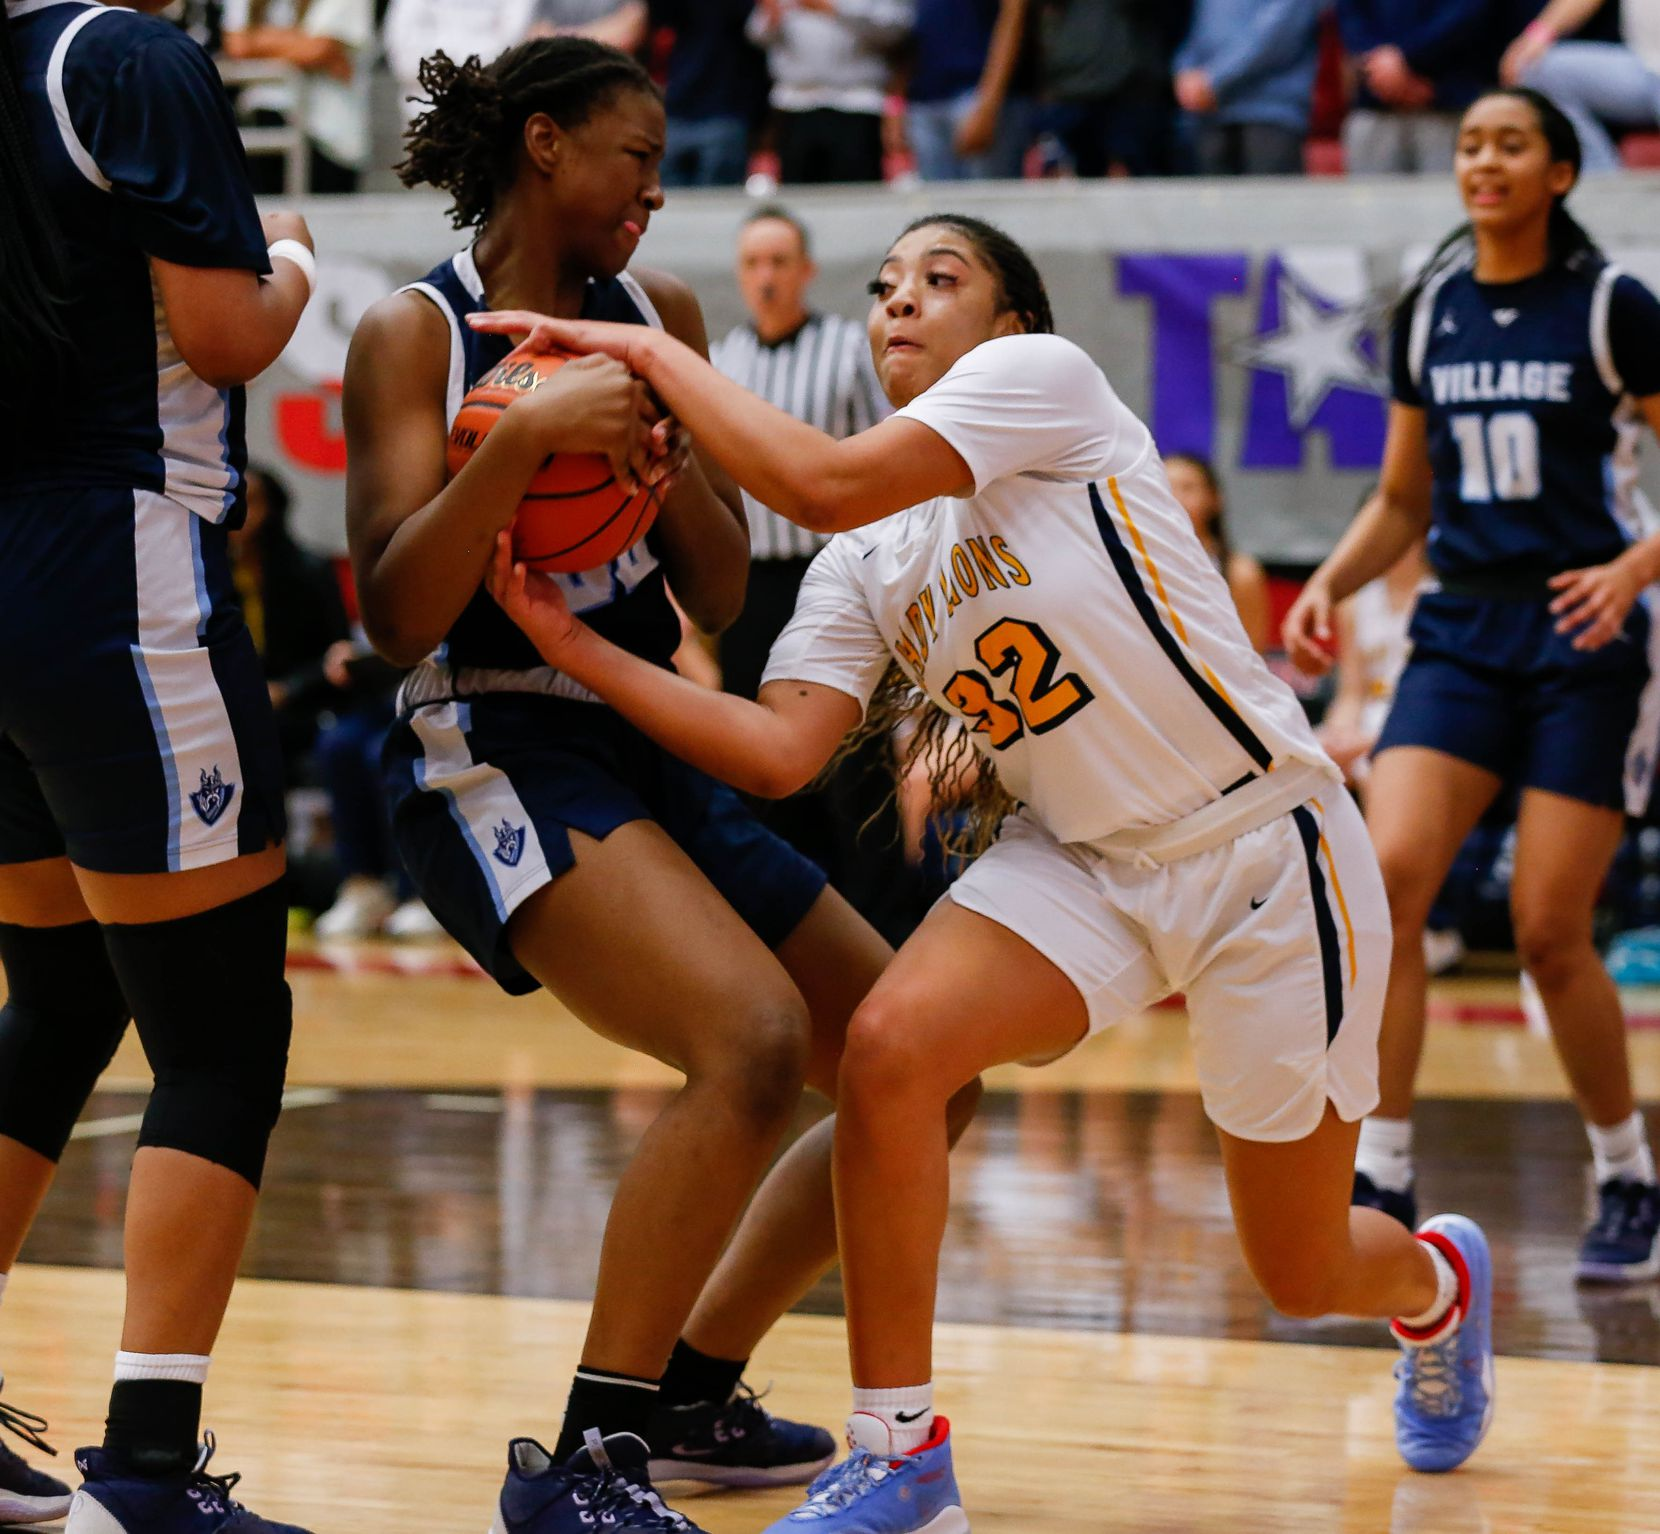 Plano Prestonwood Christian's Jordan Webster (32) fights the Village School's RyLee Grays (00) for the ball during the second half of a TAPPS Class 6A girls basketball state championship game on Feb. 28, 2020 in West. Prestonwood lost 75-48.